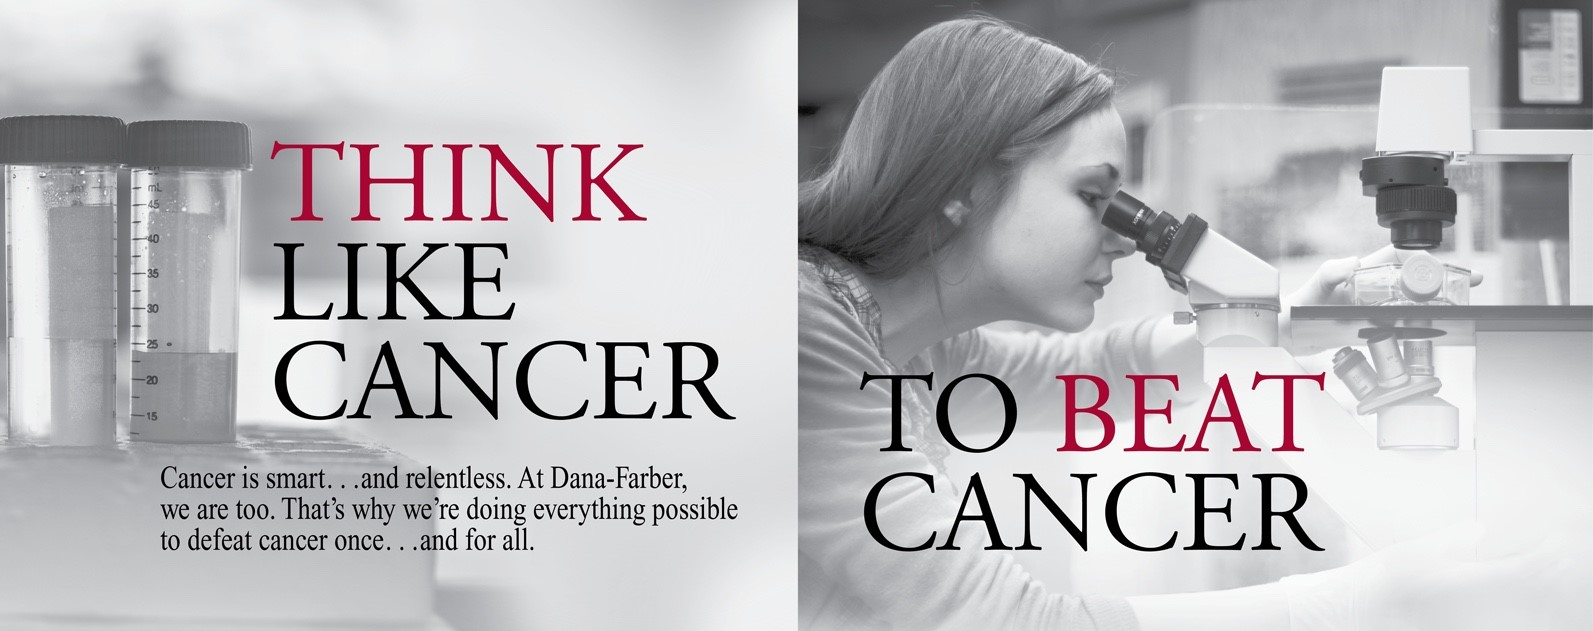 Think Like Cancer To Beat Cancer